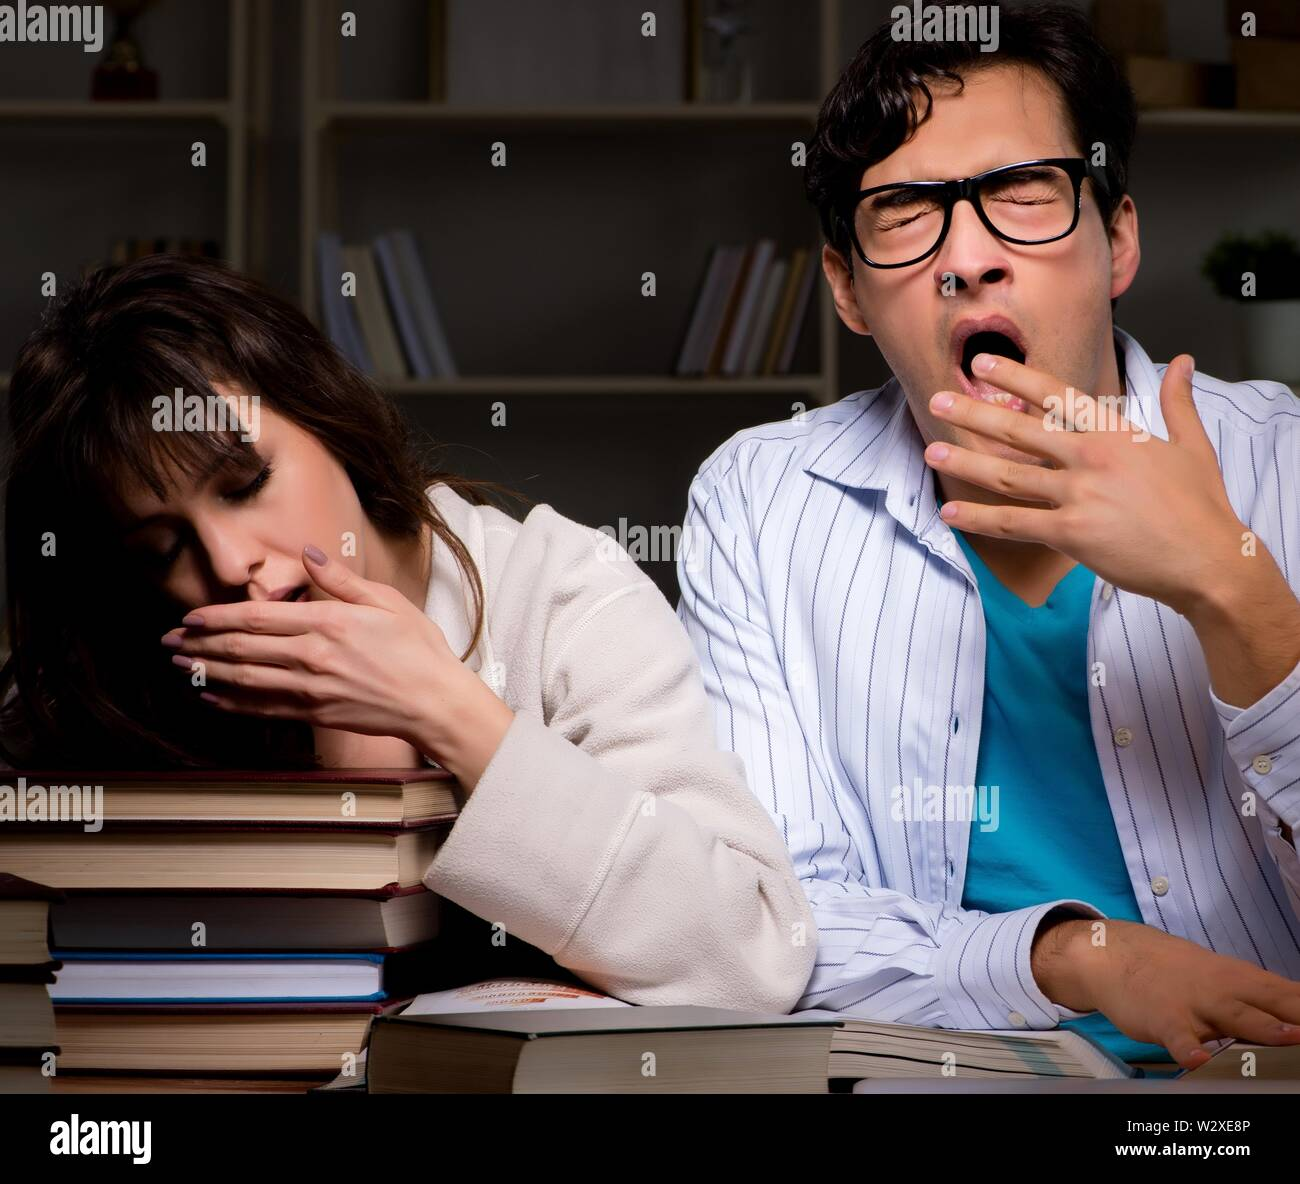 The two students studying late preparing for exams - Stock Image